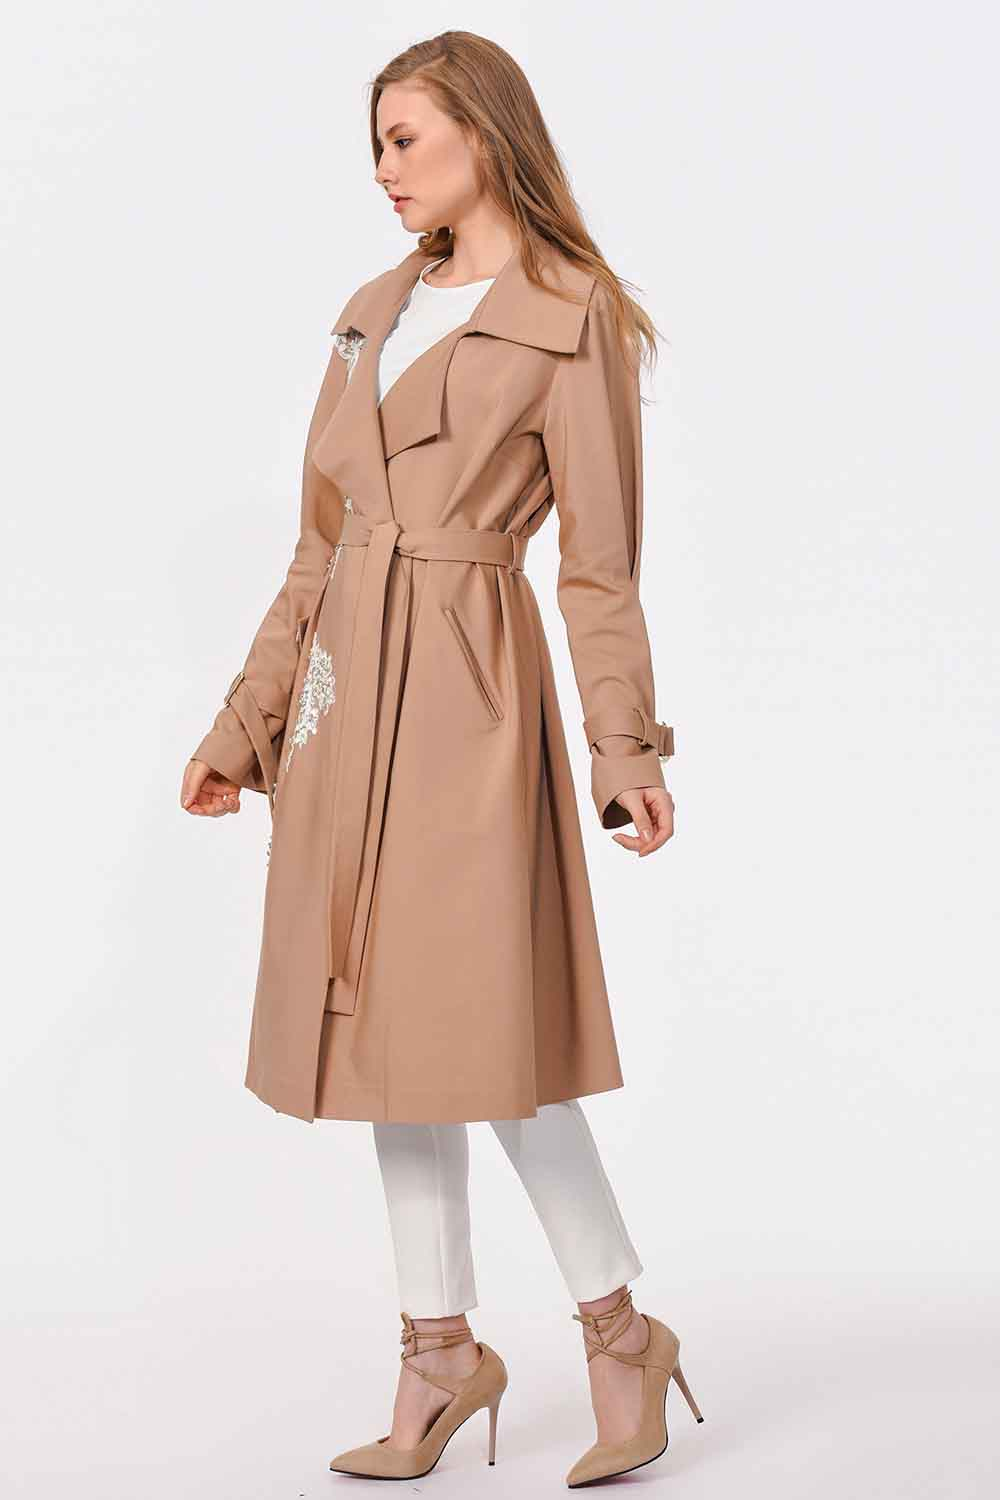 MIZALLE Guipure Detailed Design Trenchcoat (Beige) (1)